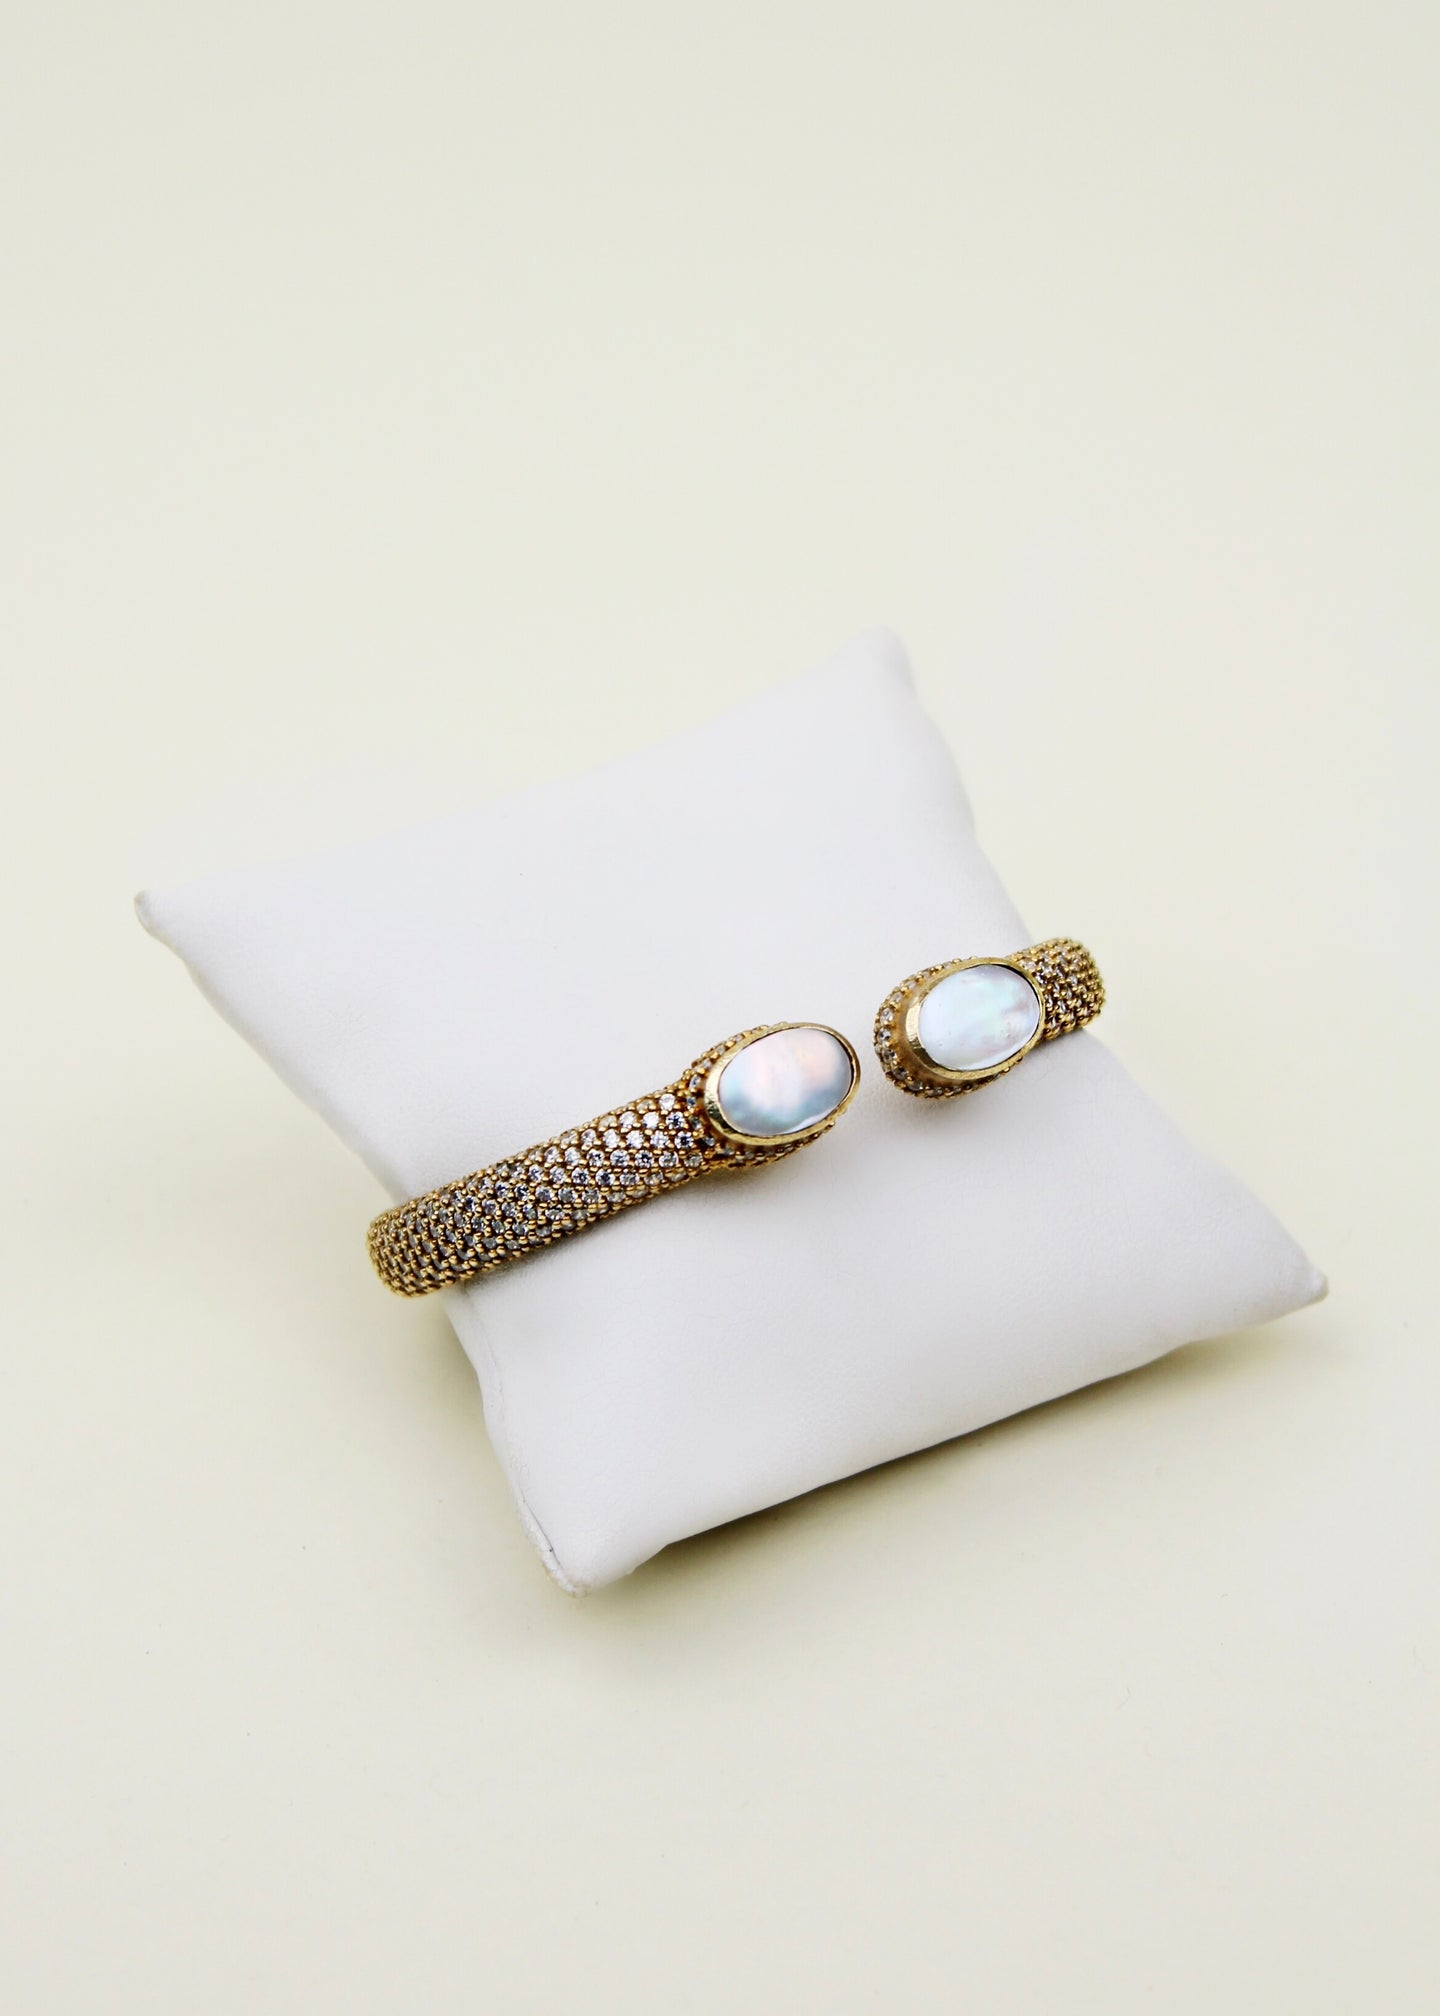 Gold Mother of Pearl Cuff Bracelet